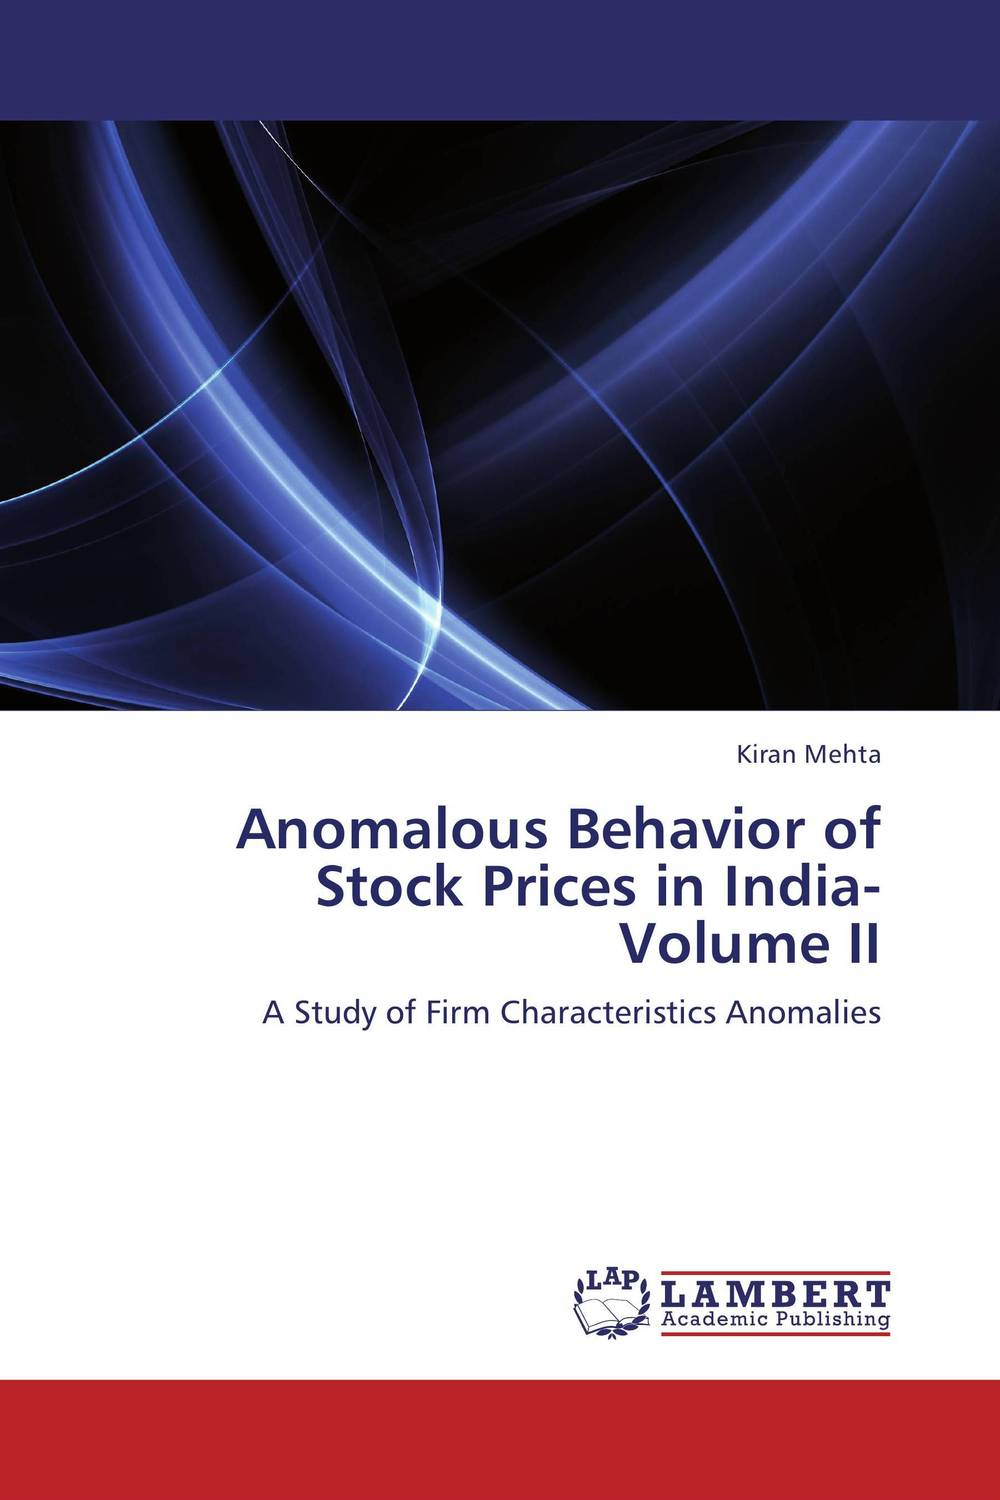 Anomalous Behavior of Stock Prices in India- Volume II